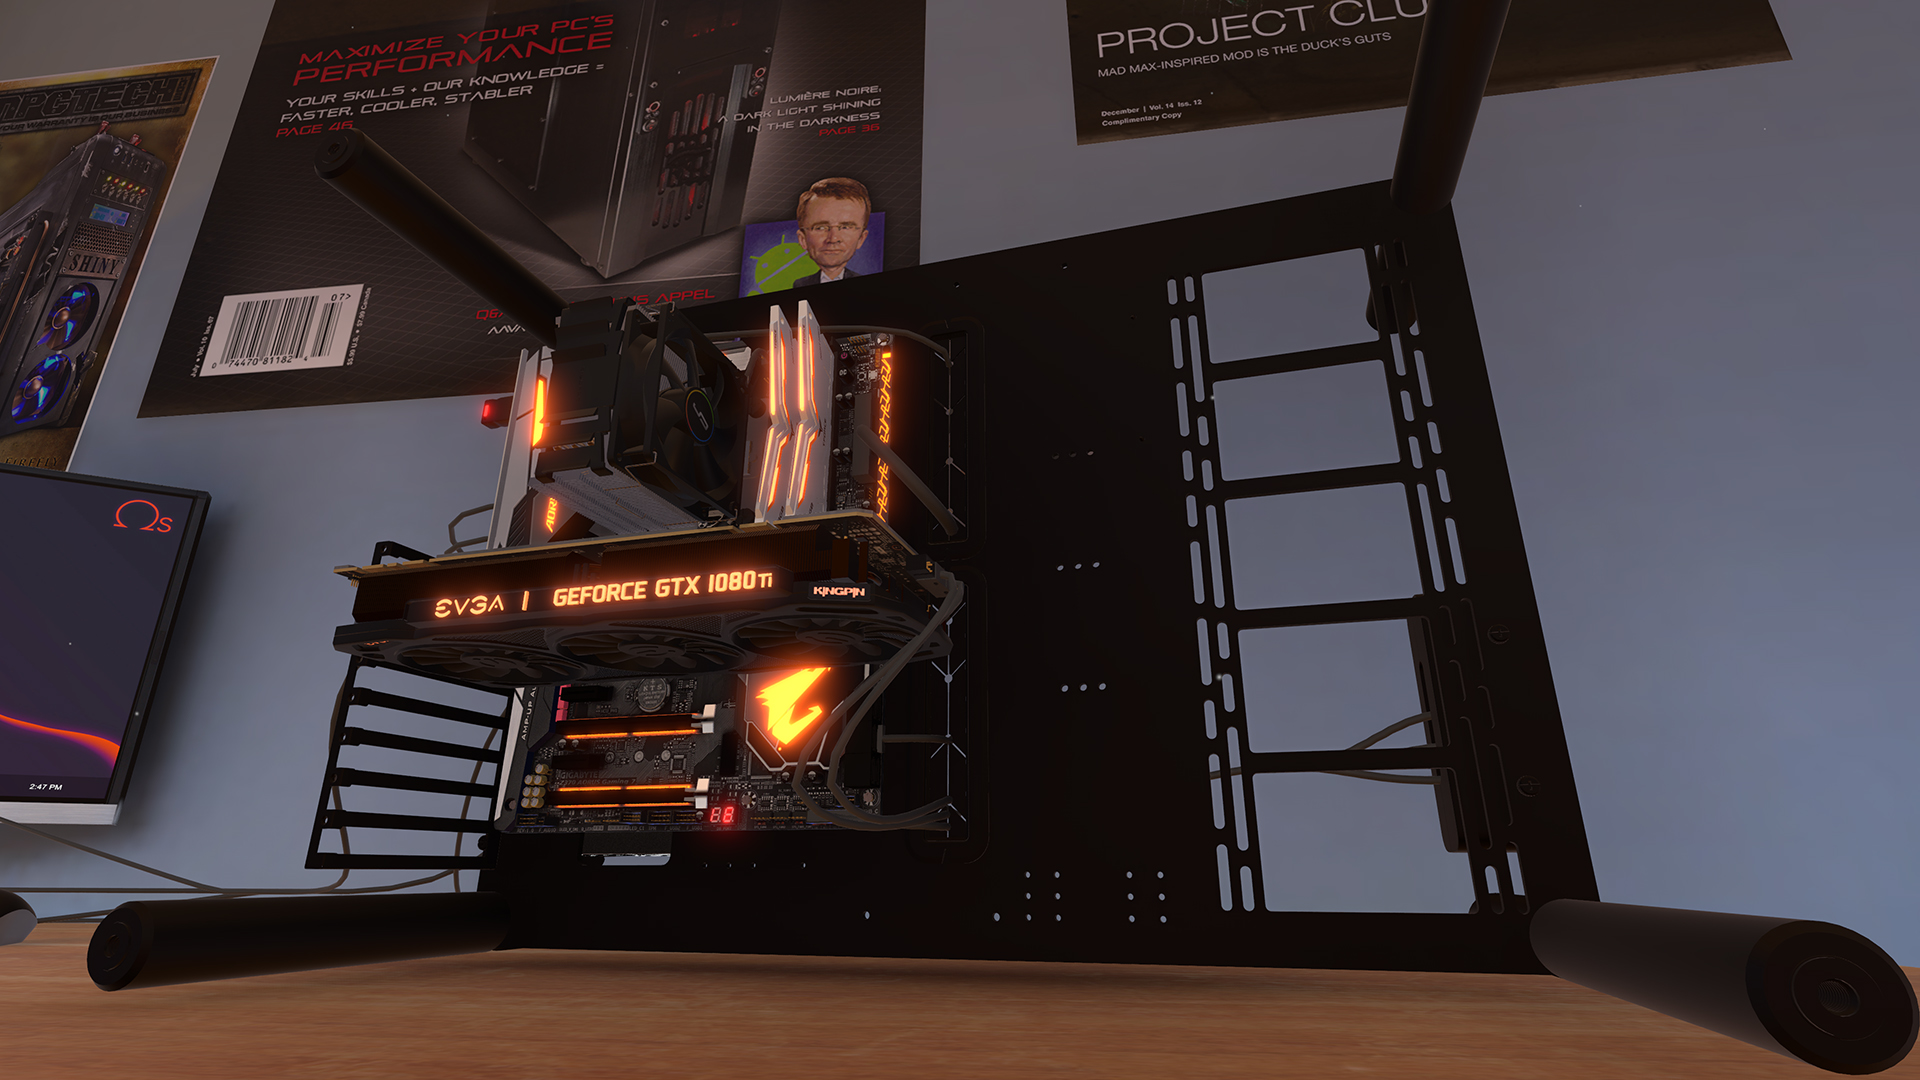 PC Building Simulator enters Early Access today